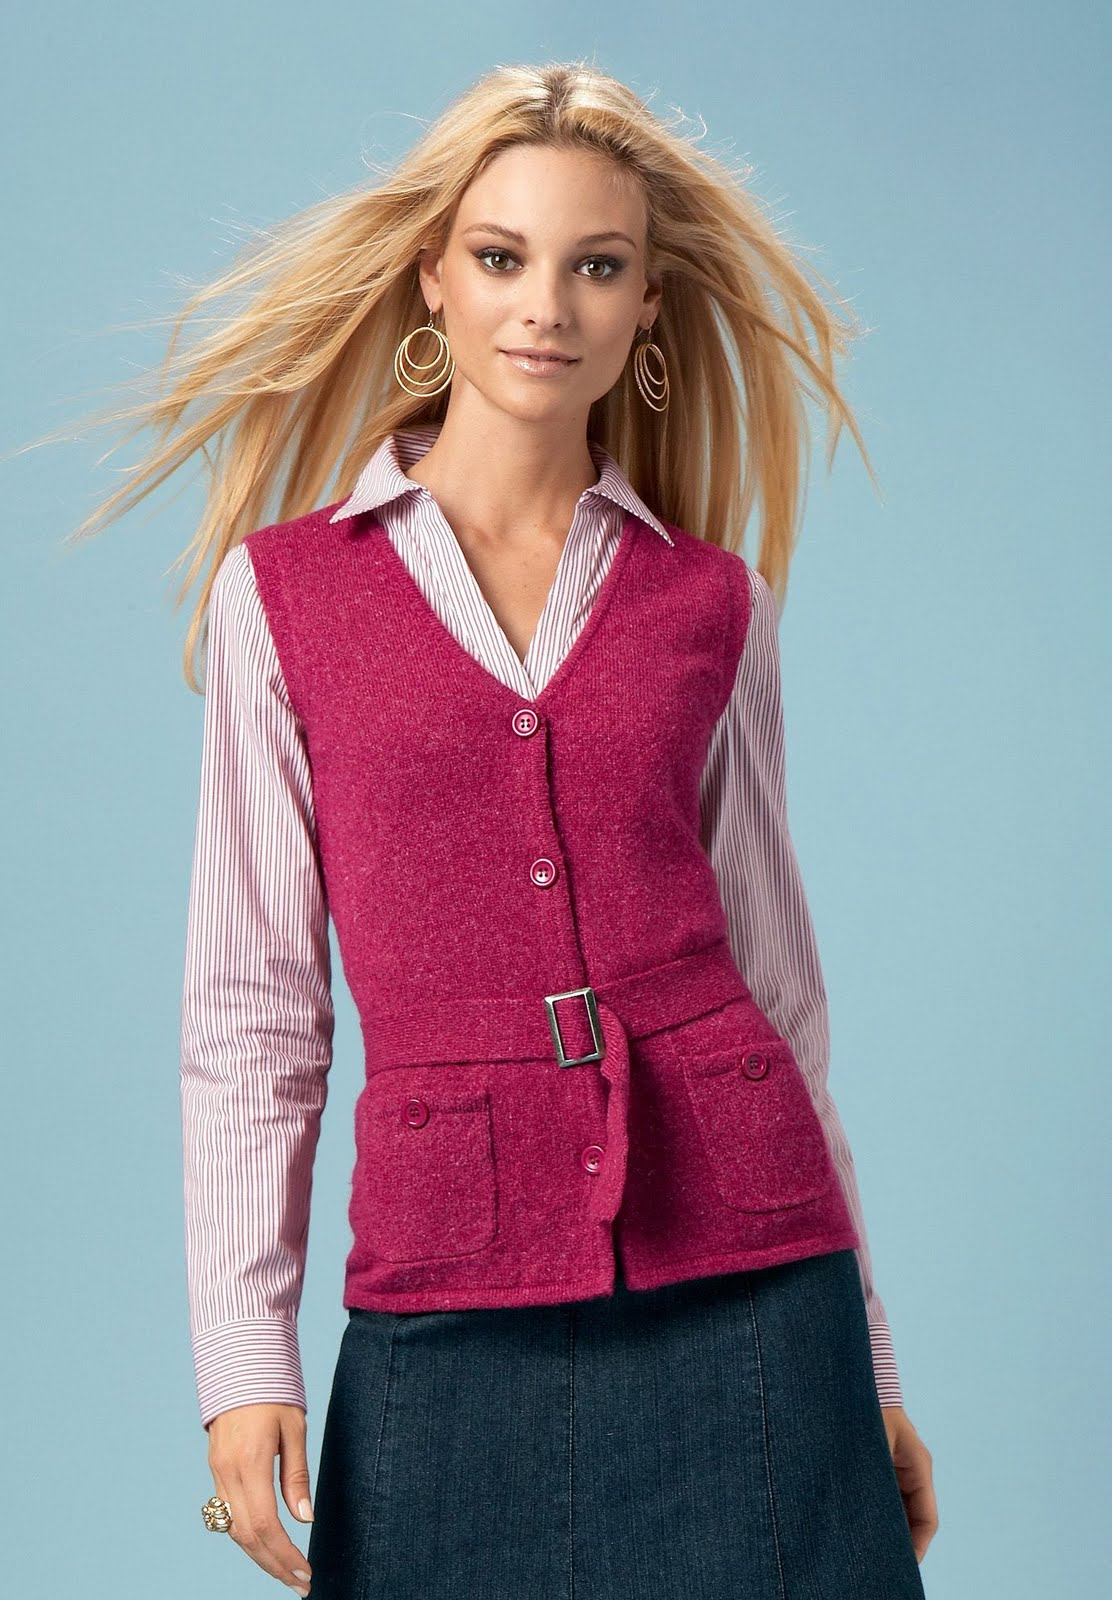 Women'S Argyle Sweater Vests - Cardigan With Buttons